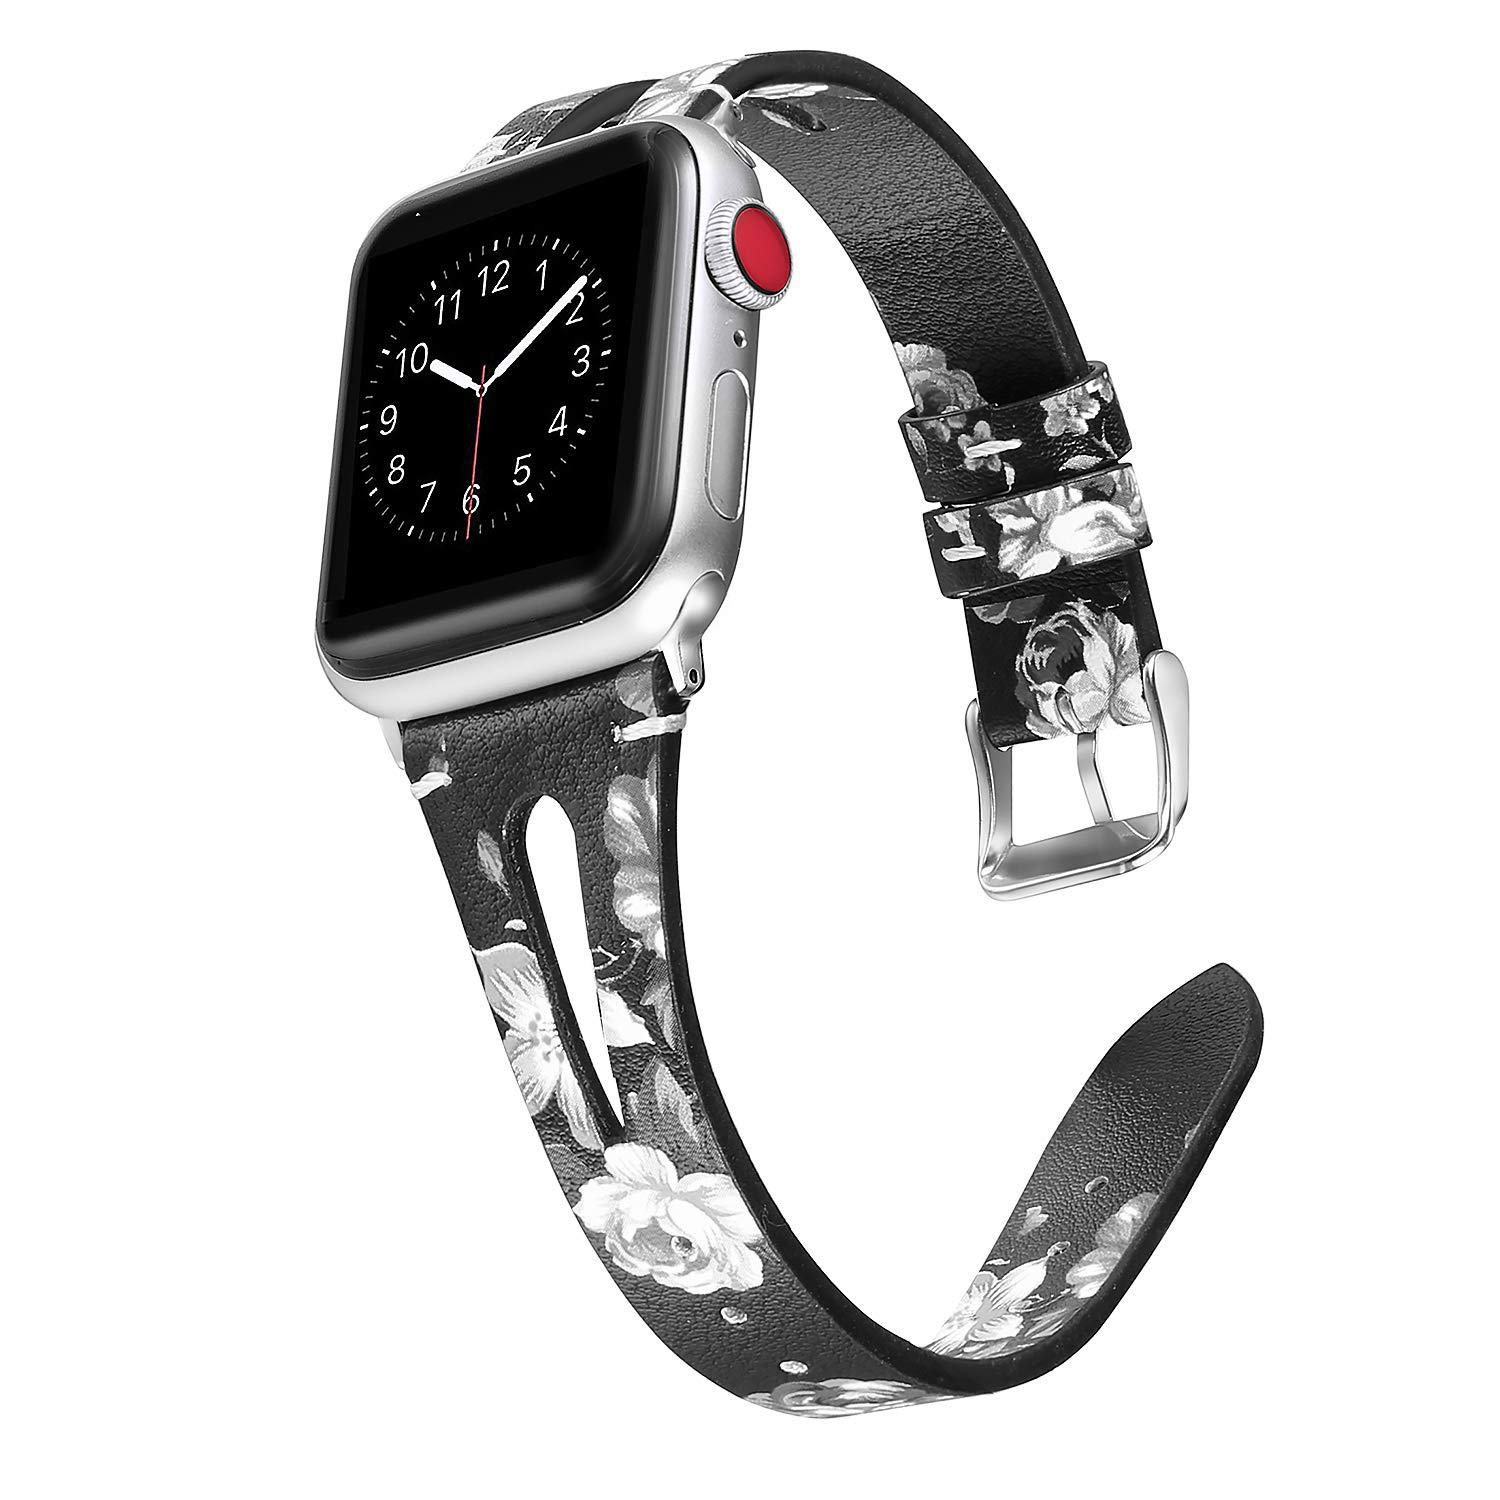 4series 22mm Watch Band 42 Watch Band for Apple 44m for Apple Watch Band for for Apple Watch Band Wrist Watch Strap Band for Apple Watch 42mm 4series for Apple Watch Bands (White Floral, 38mm40mm) by TIMESFRIEND